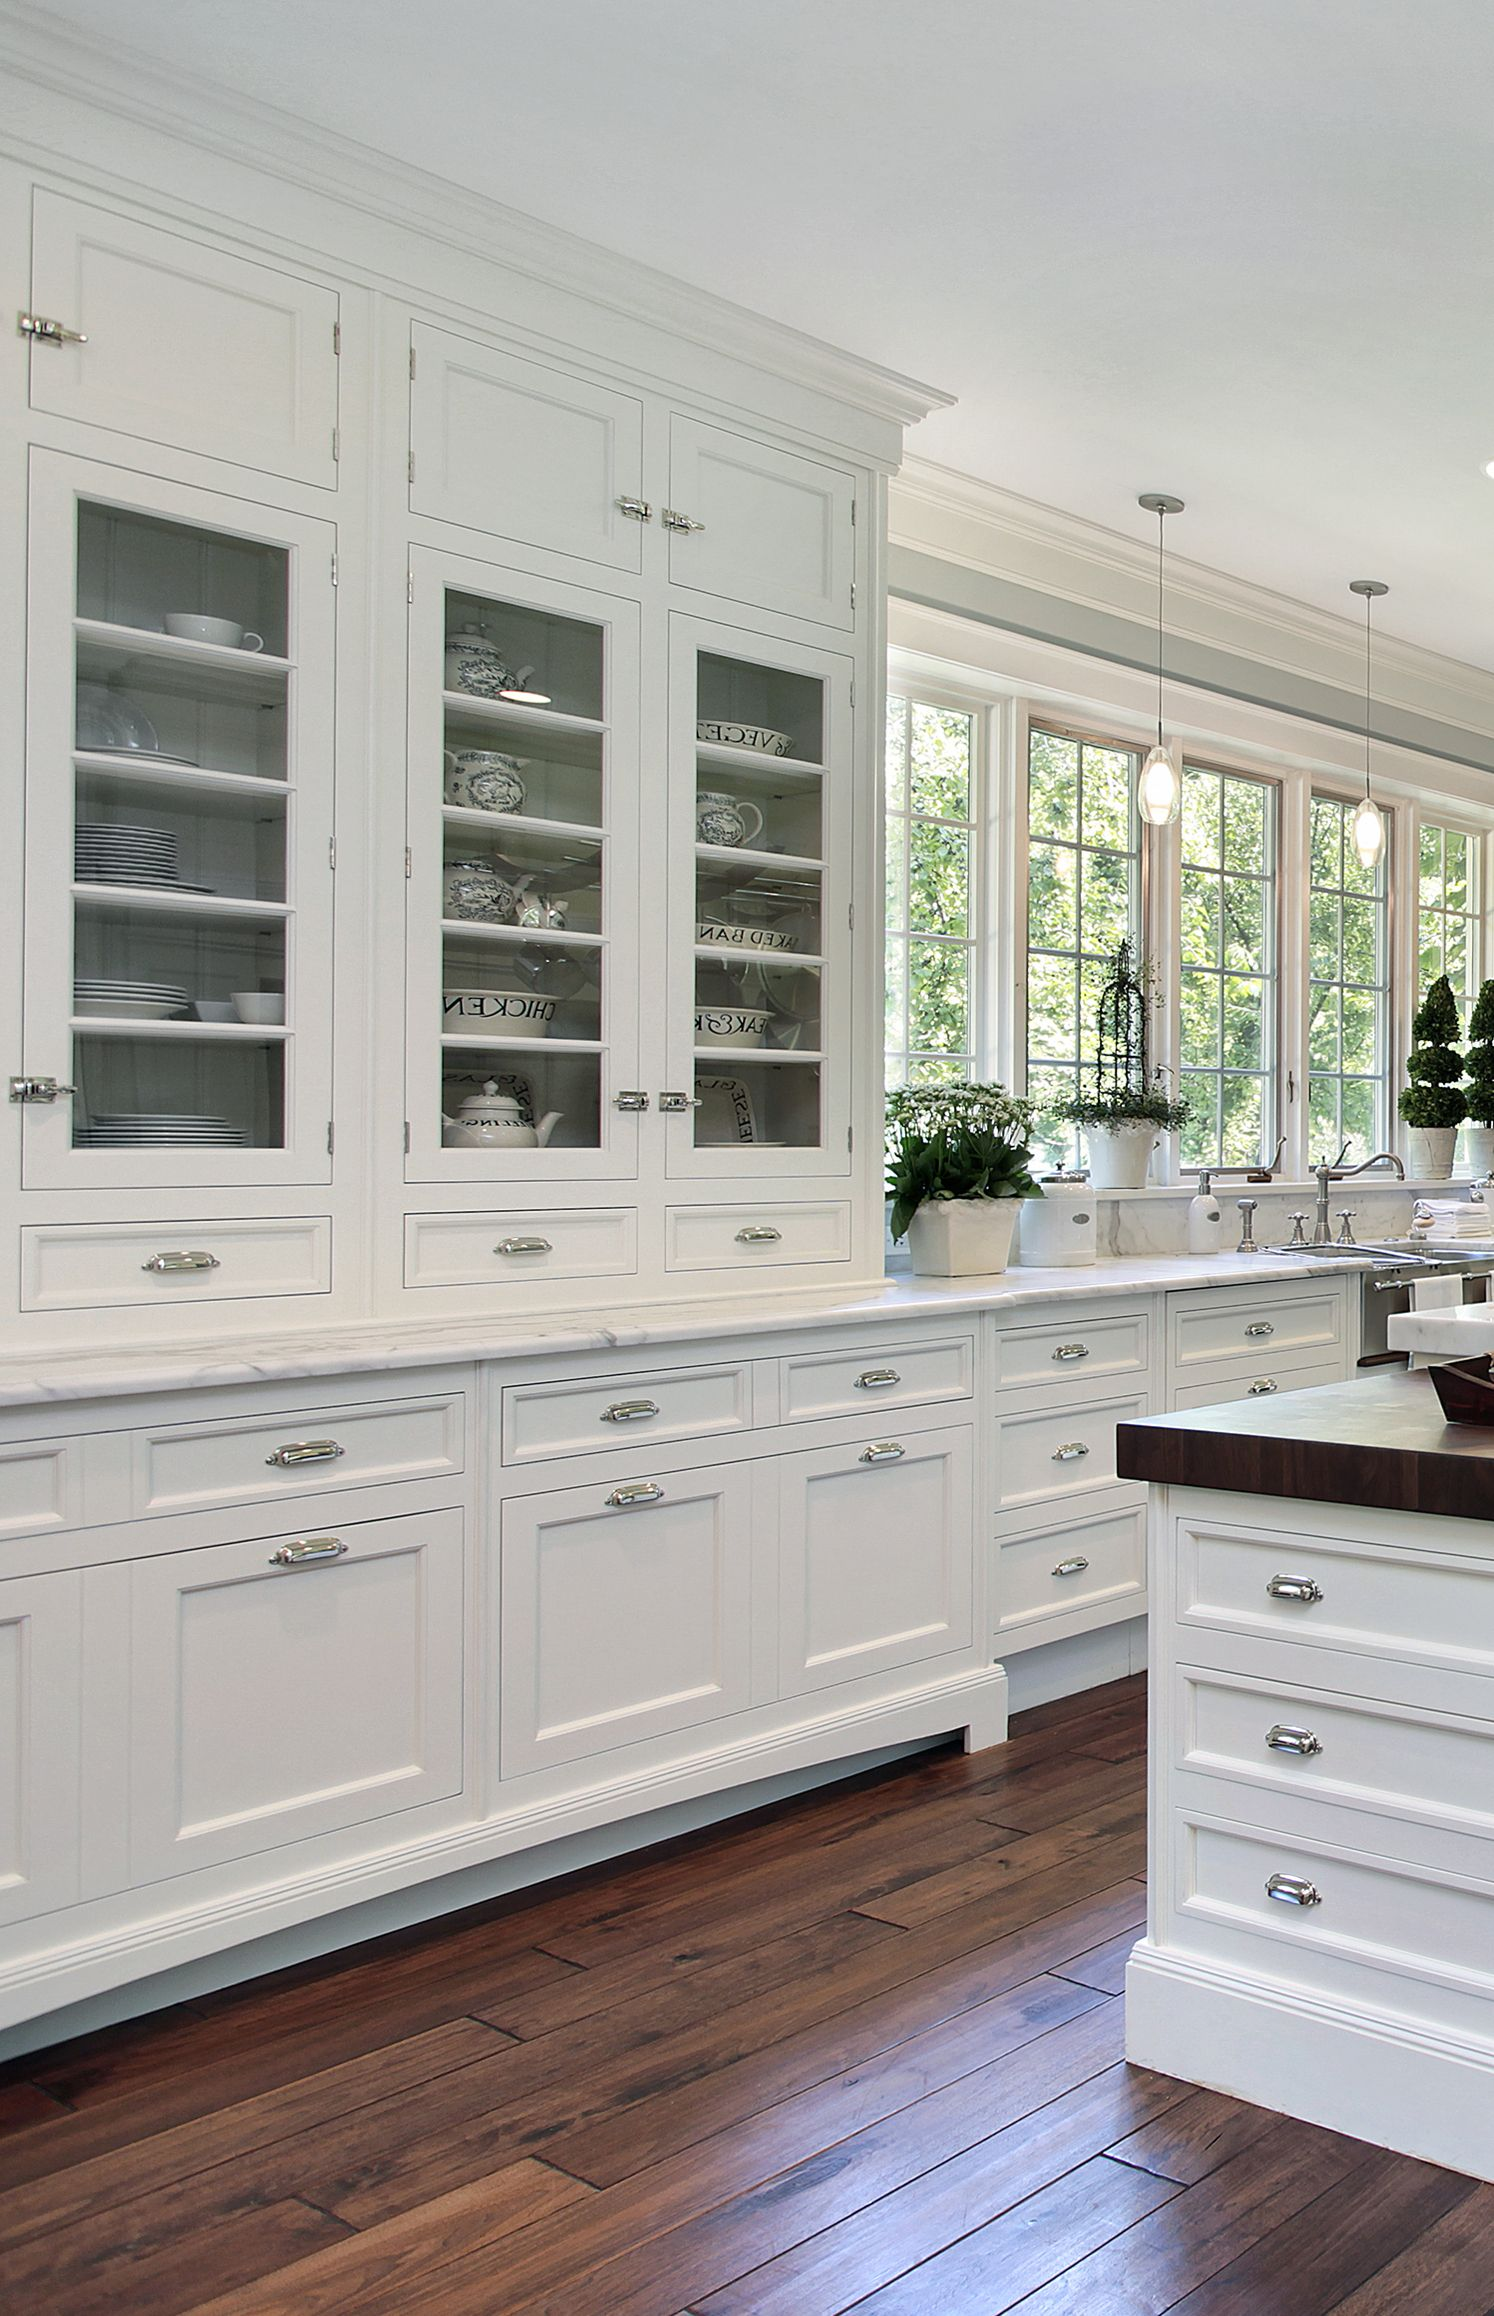 Where Your Money Goes In A Kitchen Remodel: White Traditional Kitchens Never Go Out Of Style. Www